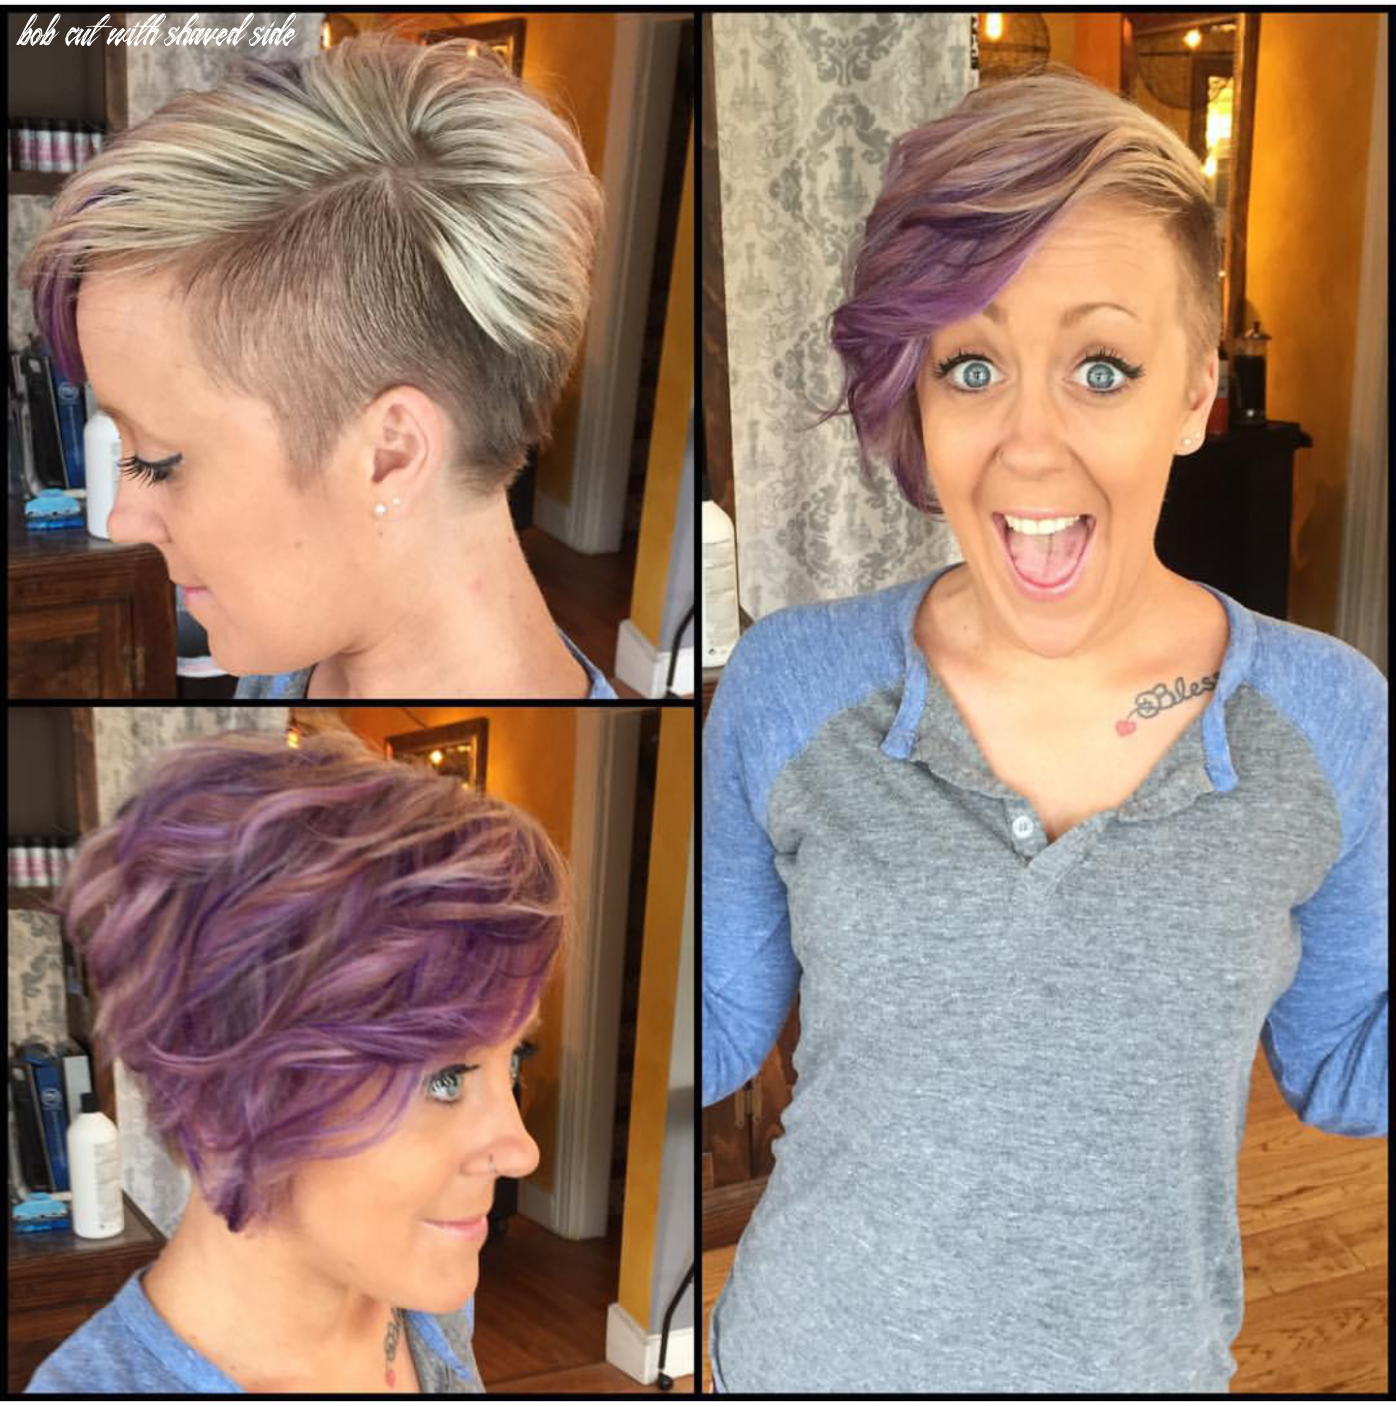 10 Bob Cut With Shaved Side - Undercut Hairstyle